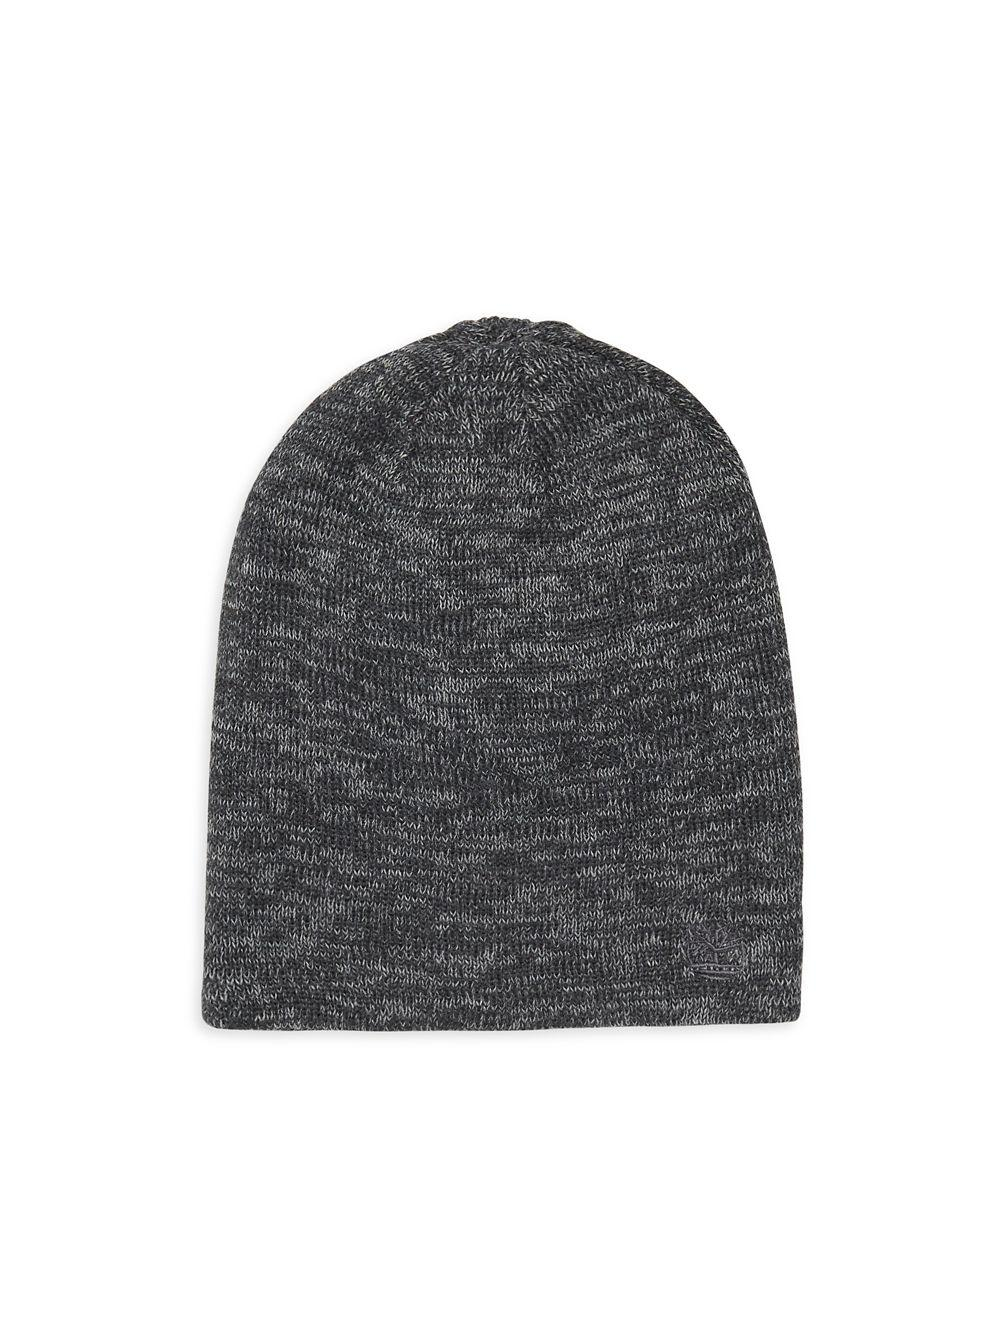 8c21517c69679 Timberland Reversible Marled Beanie in Gray for Men - Lyst